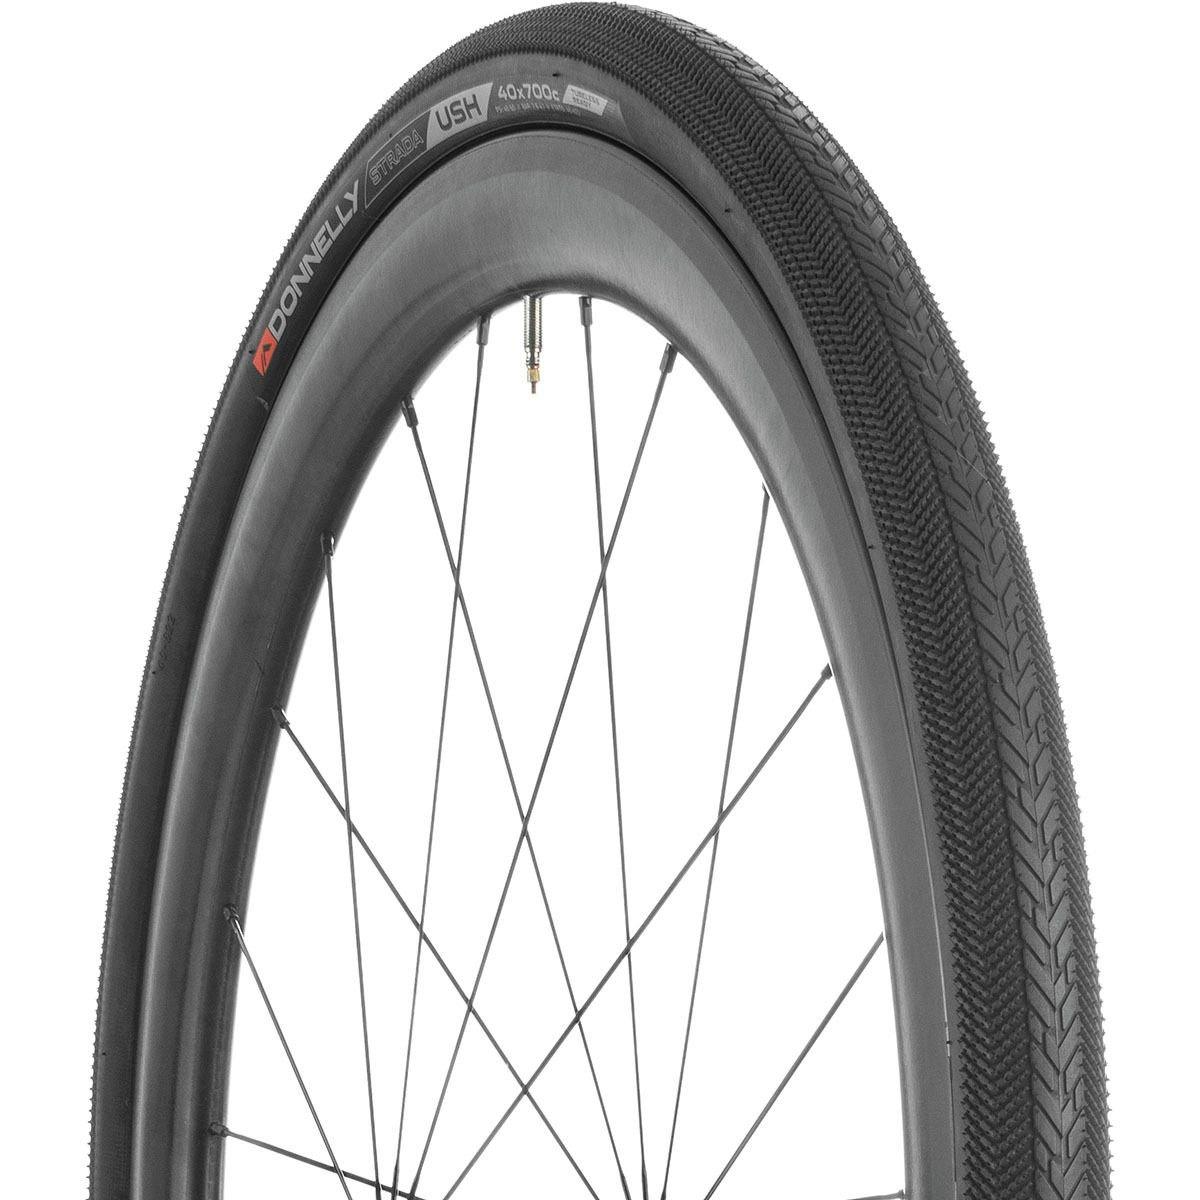 Donnelly Strada USH Tubeless Bike Tires |Adventure Road Tire | Sizes: 700 x 32 | MTB Tires by Donnelly